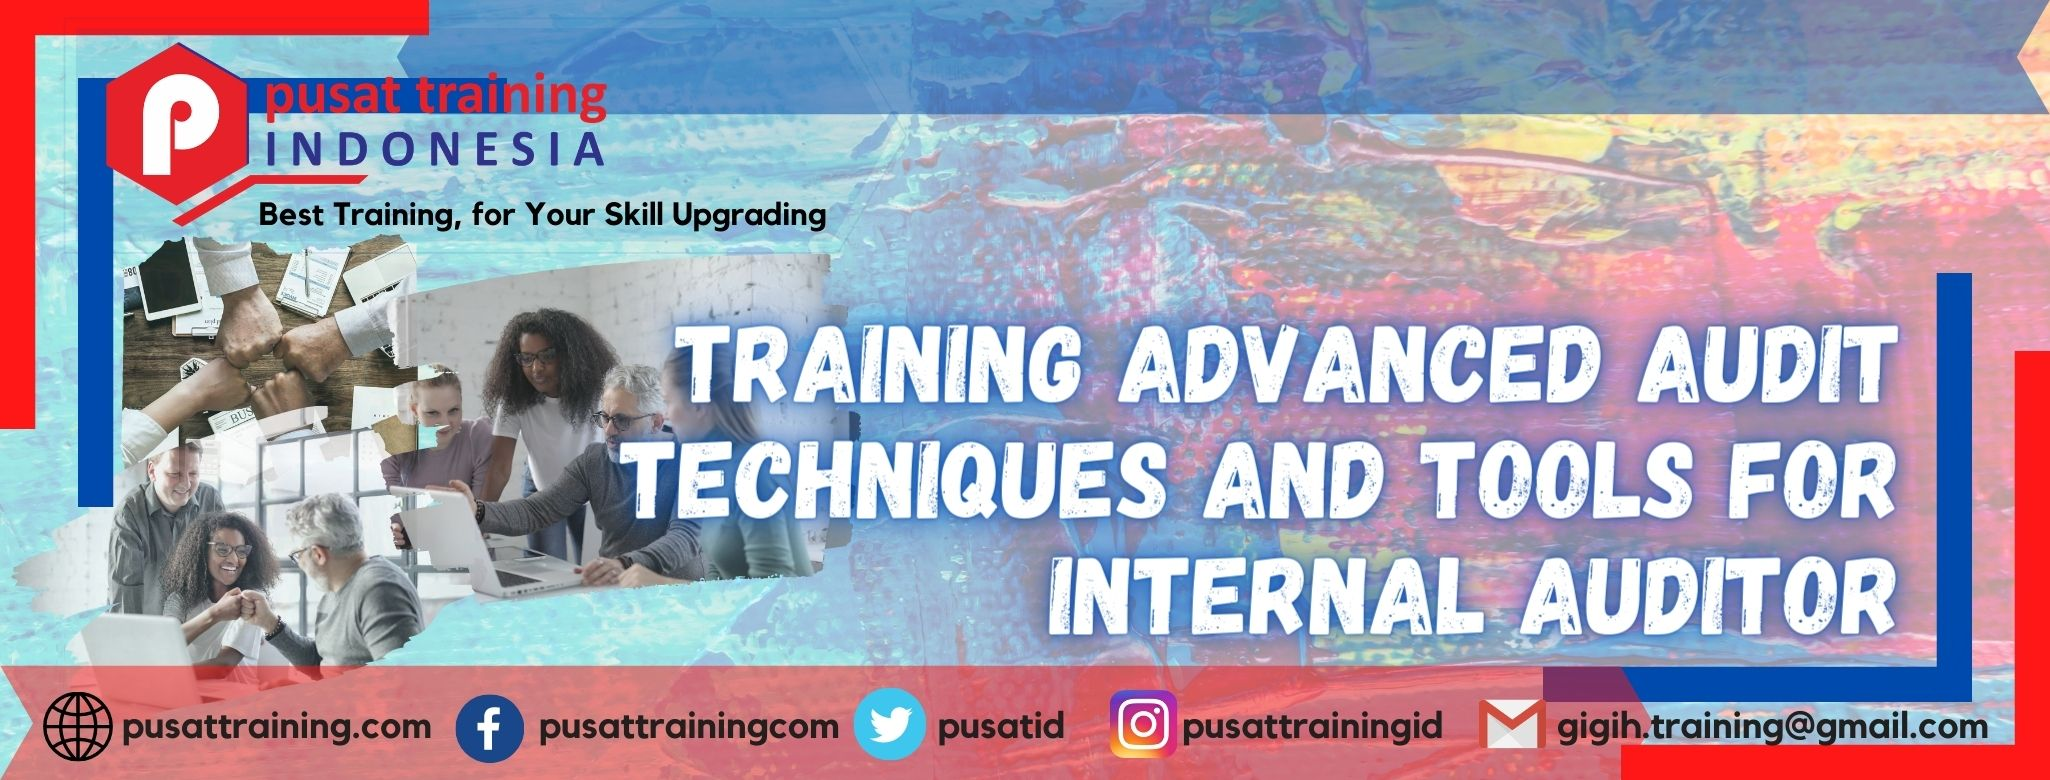 Training-Advanced-Audit-Techniques-and-Tools-for-Internal-Auditor.